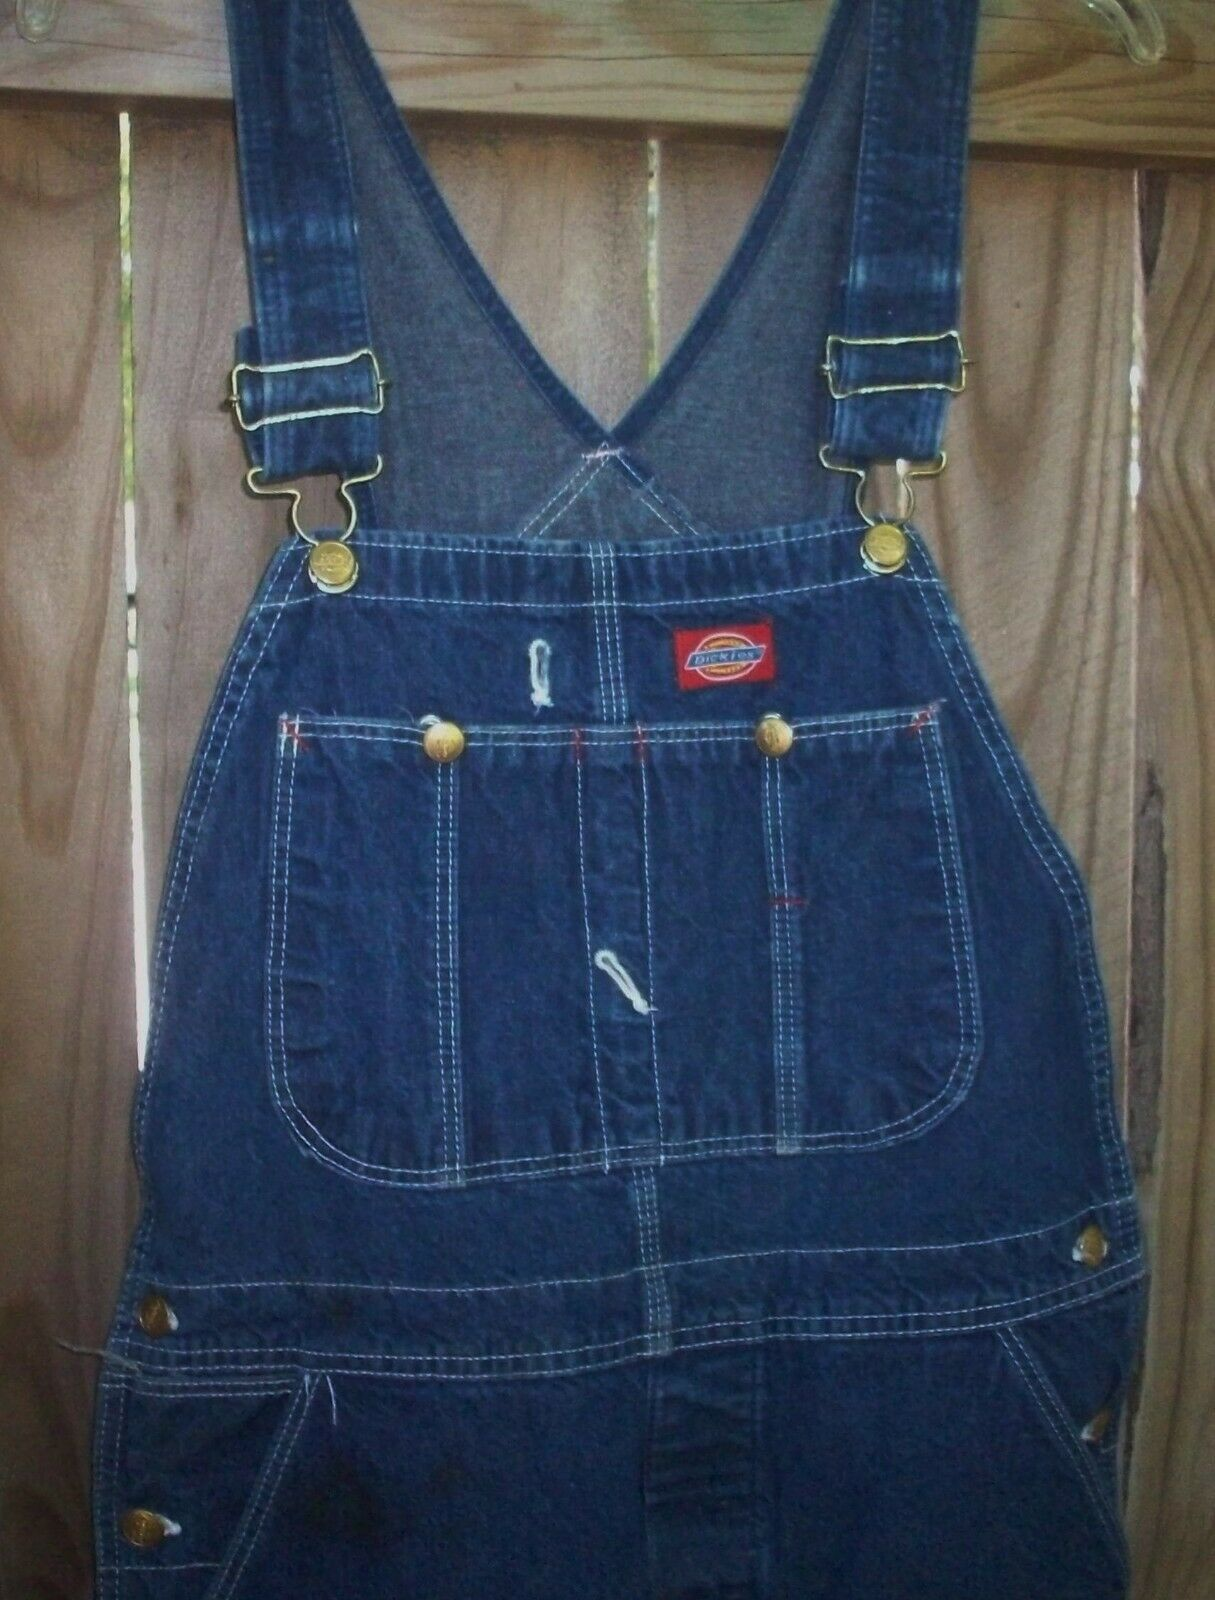 Vintage Dickies Overalls Size 34x34 - image 2